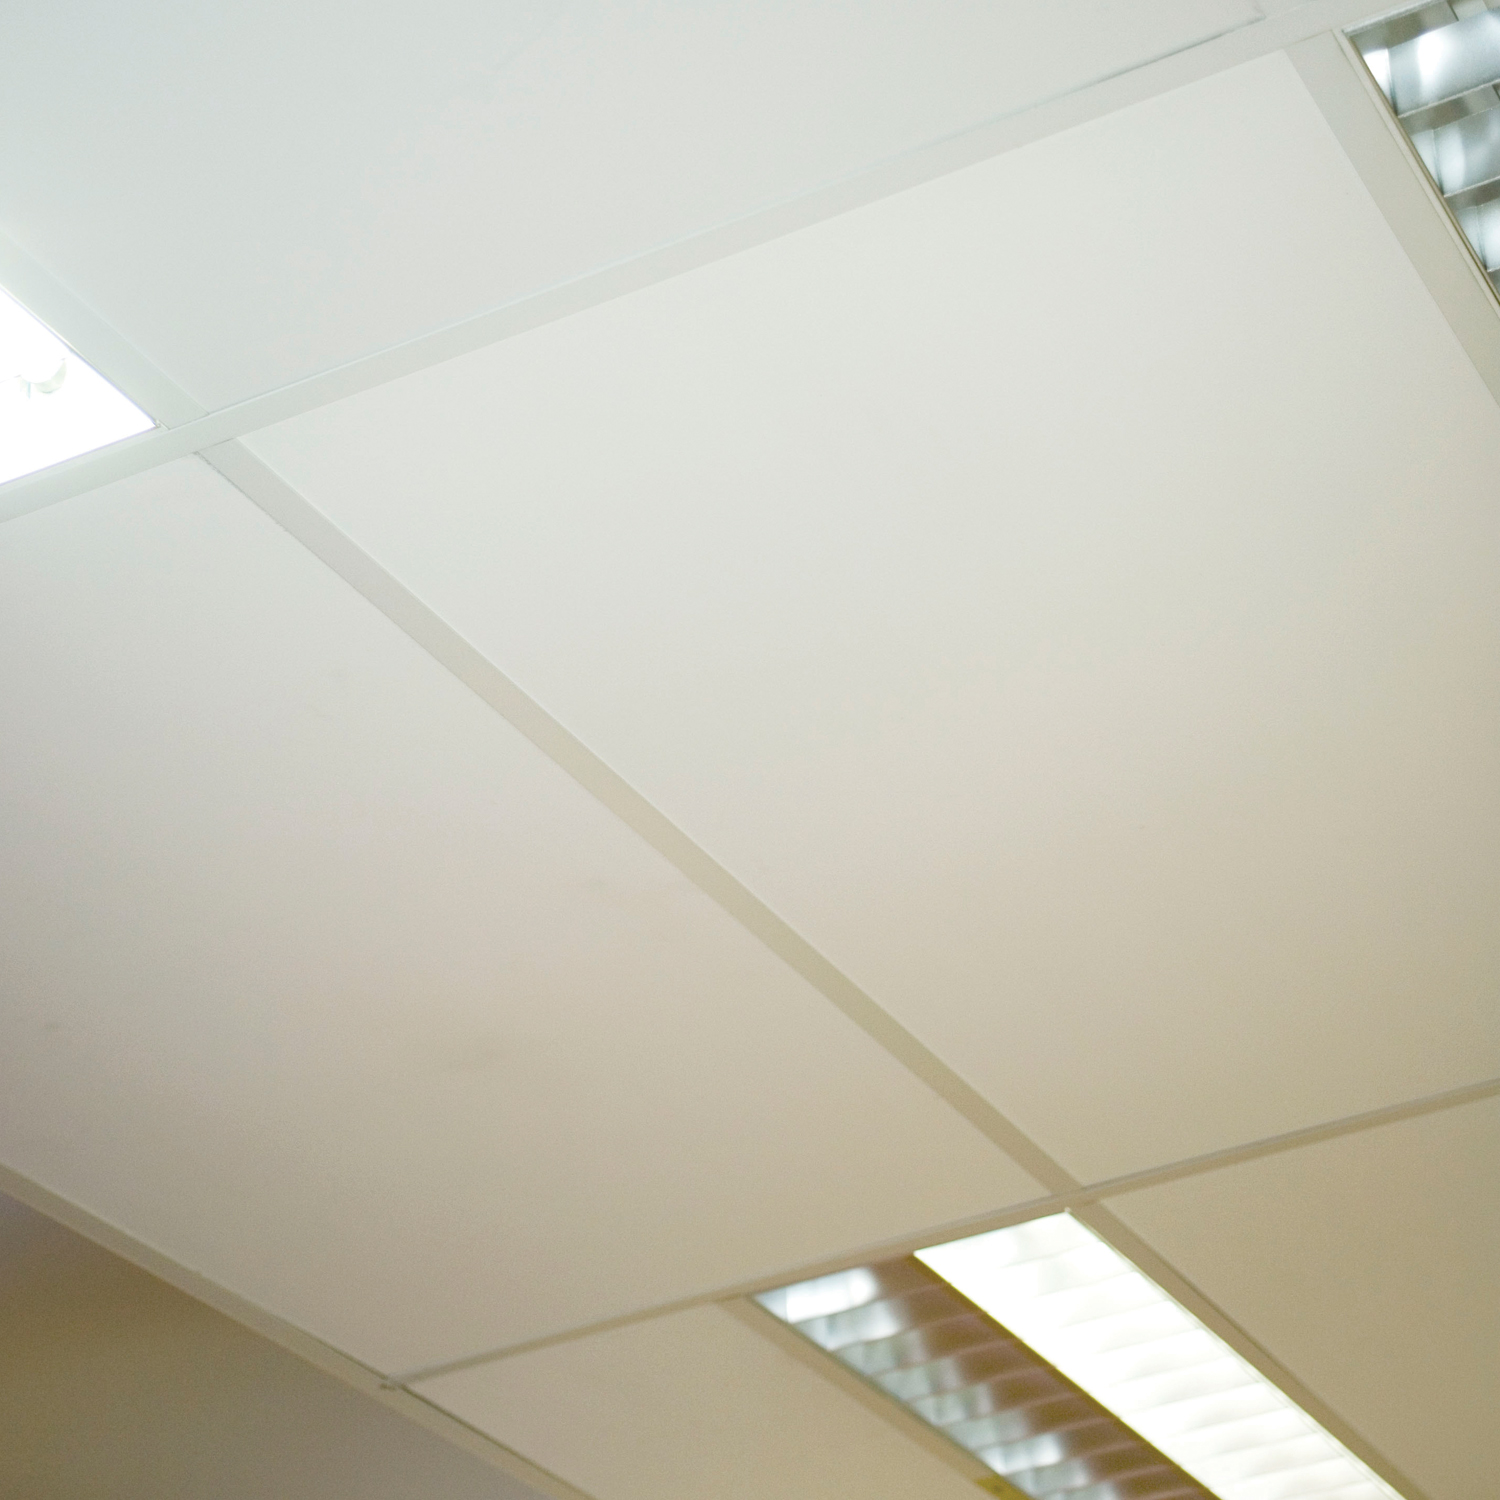 Supatone Ceiling Tiles for exposed grid systems